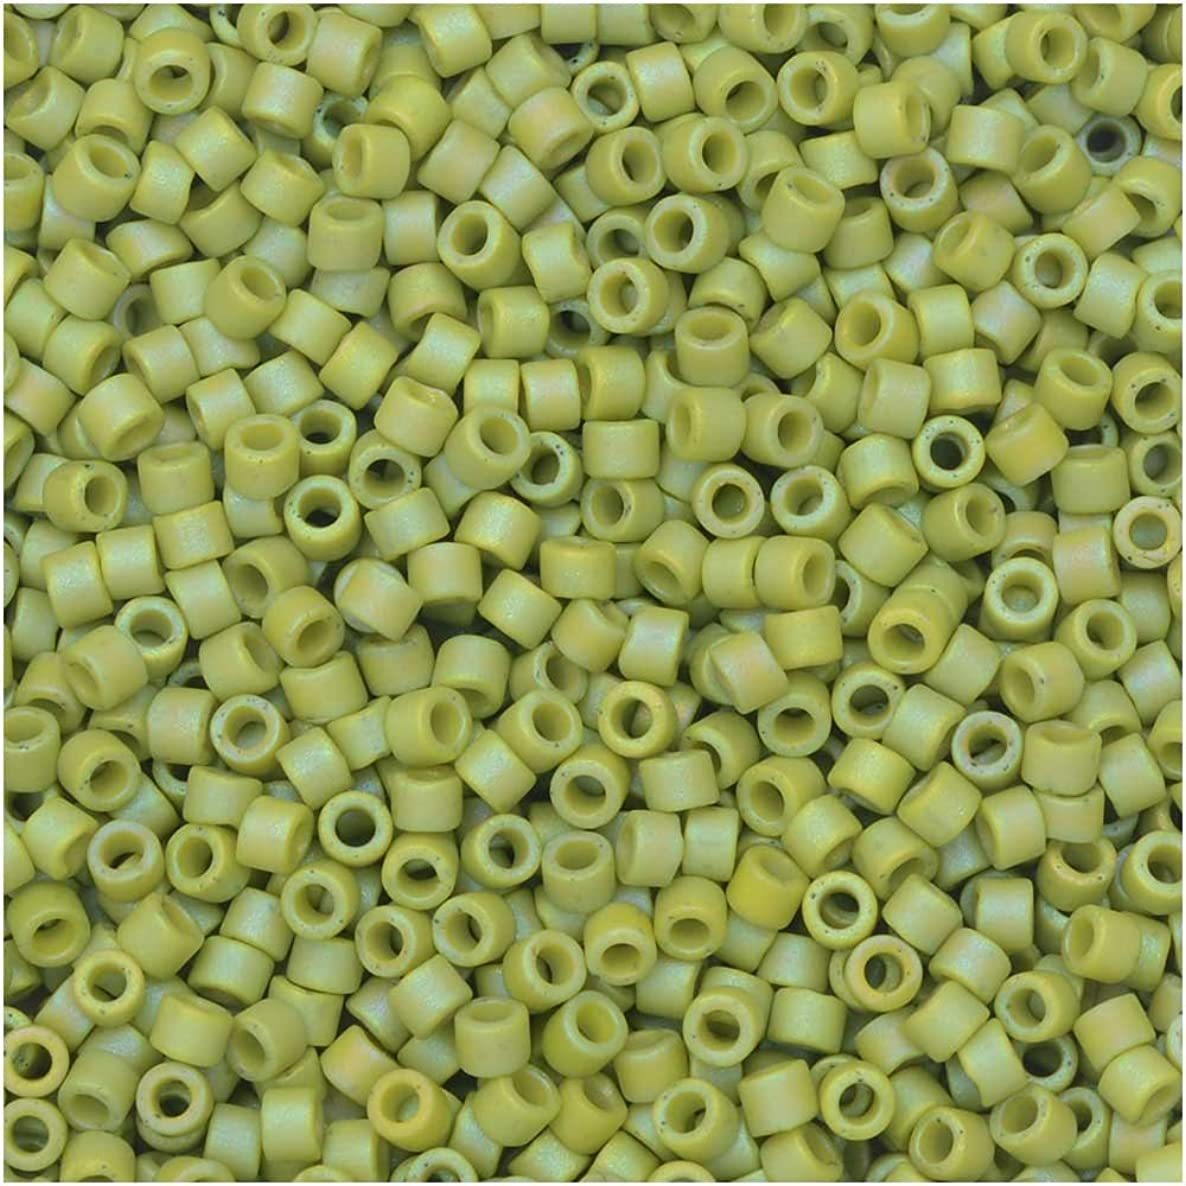 Miyuki Delica Seed Beads, 11/0 Size, 7.2 Gram Tube, 2309 Frosted Opaque Glazed Rainbow Olive